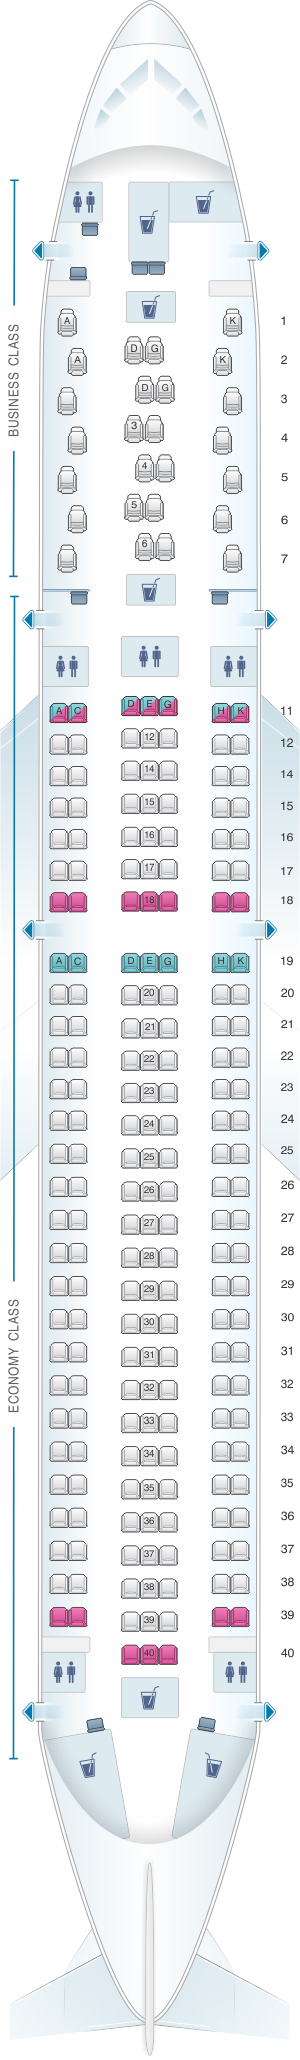 Seat map for Austrian Airlines Boeing B767 300 ER Version 26/199